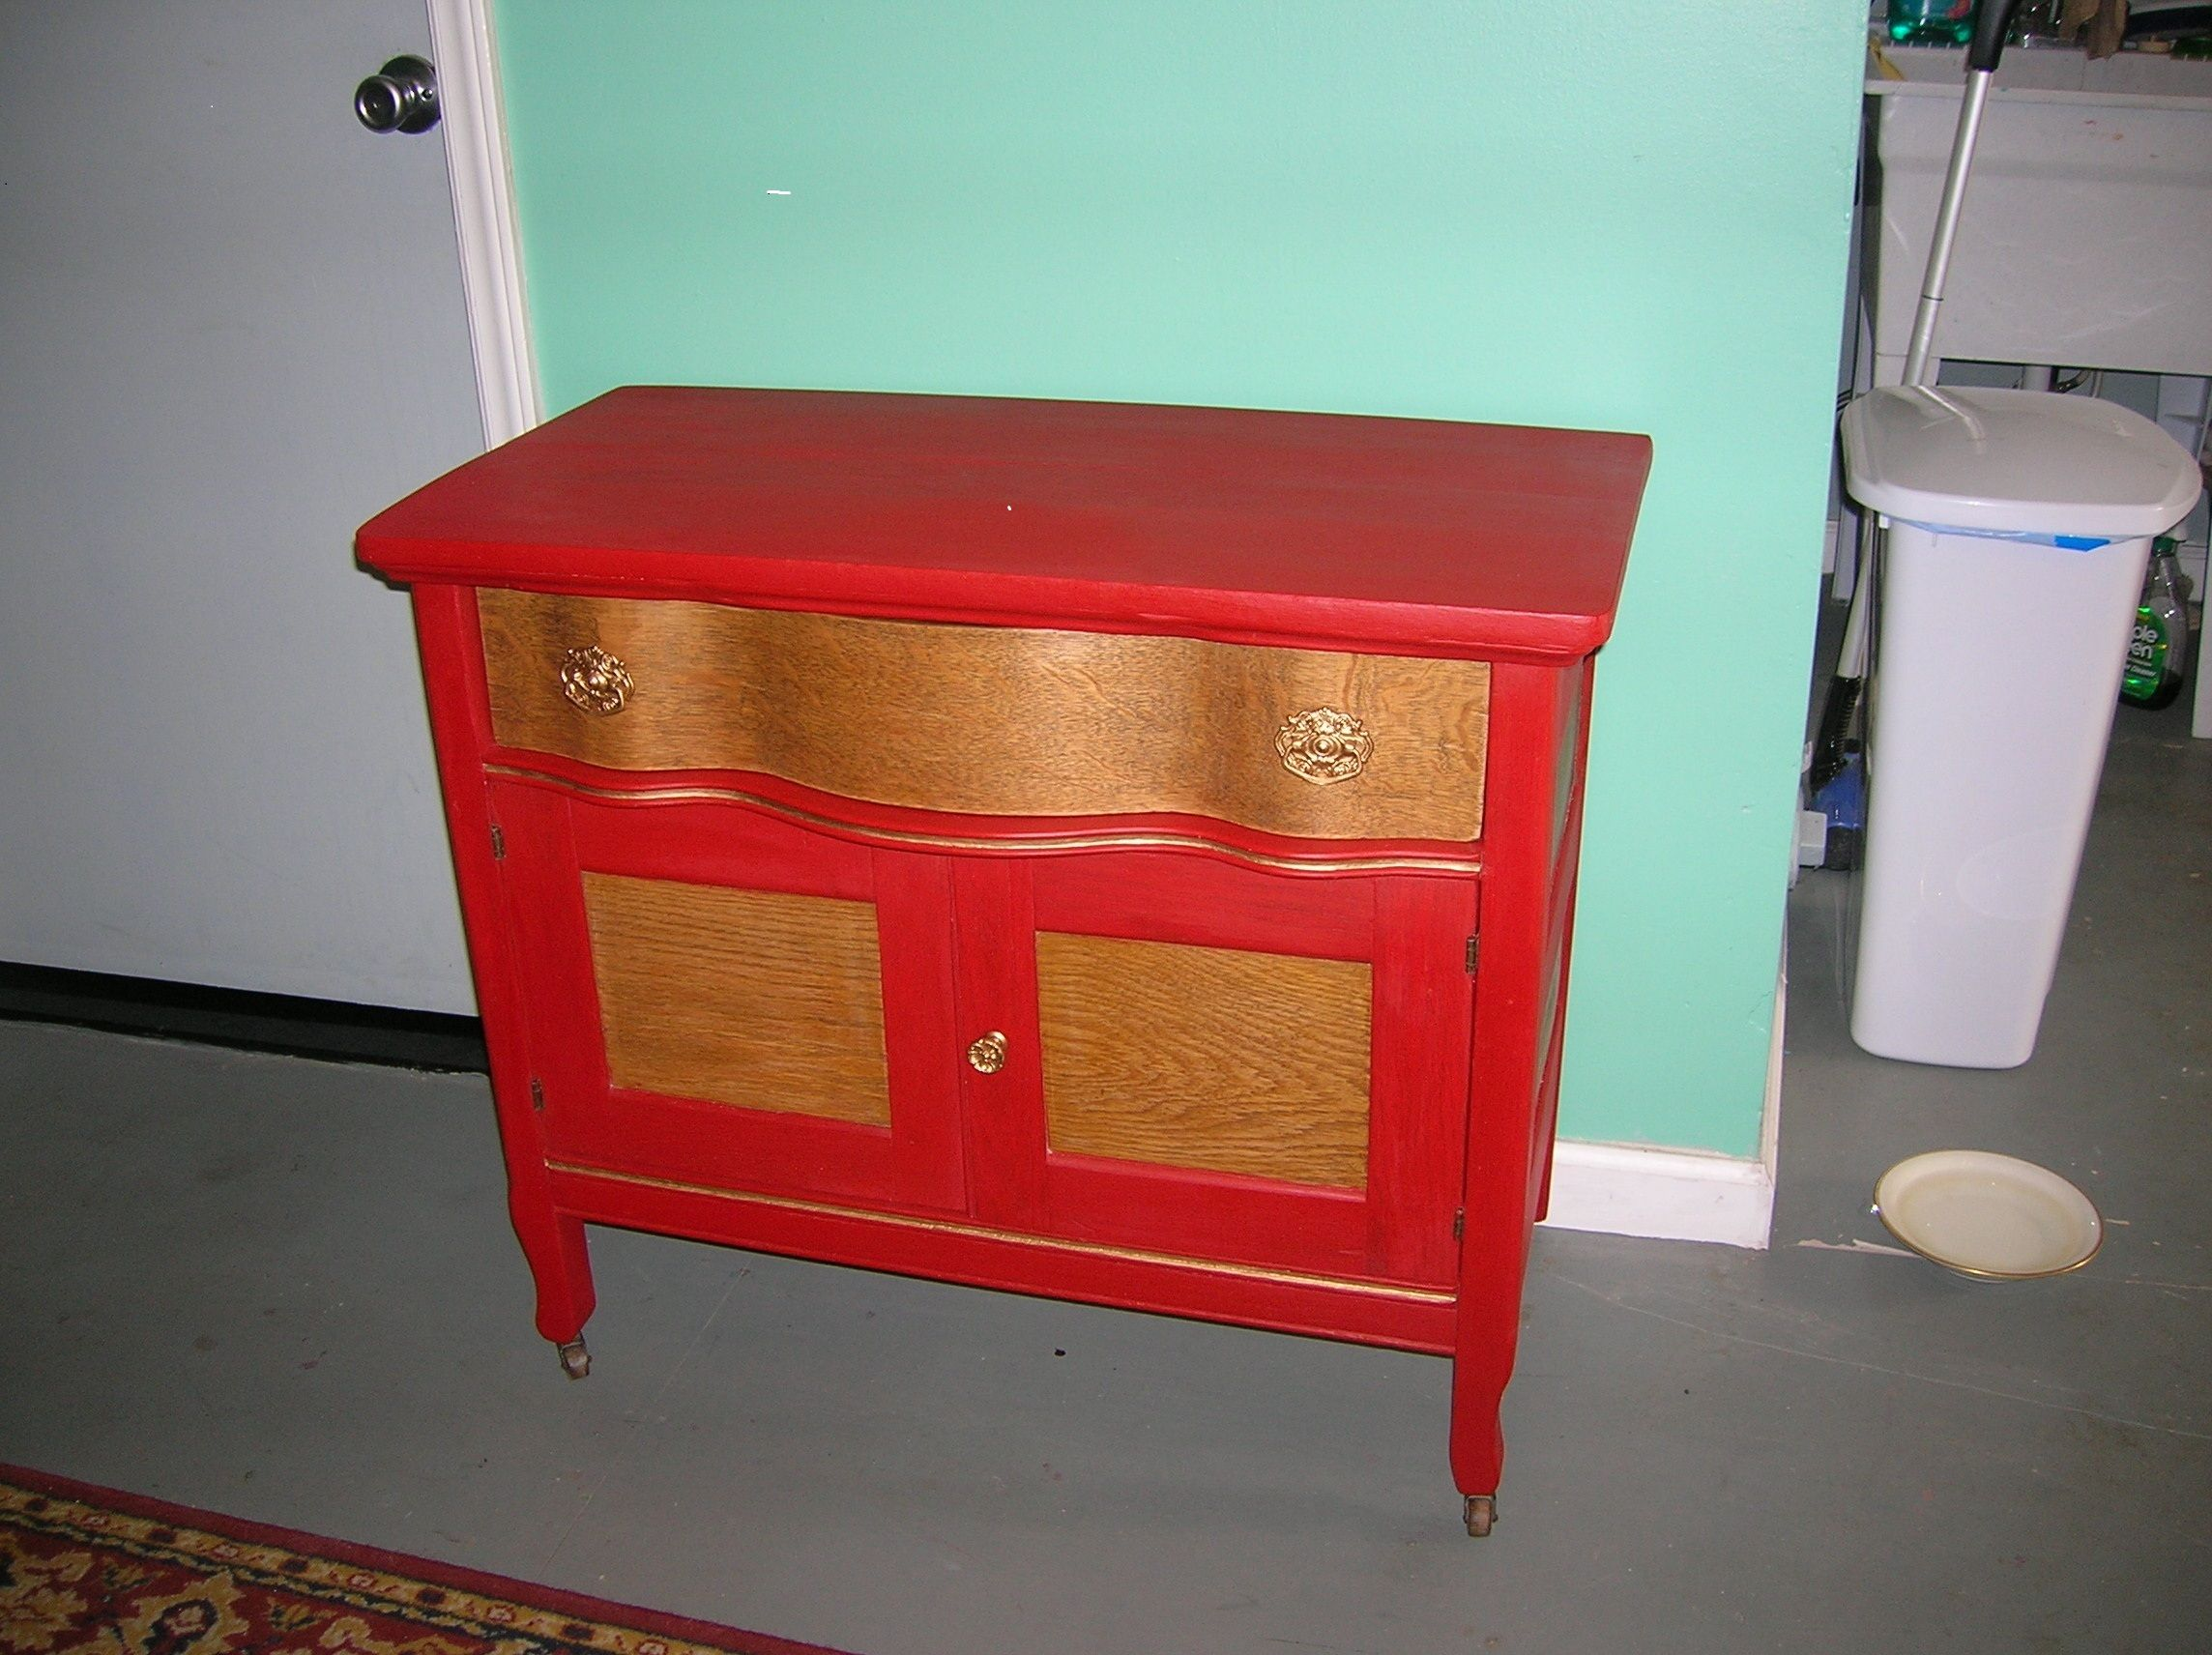 This is a golden oak wash stand that has been given a